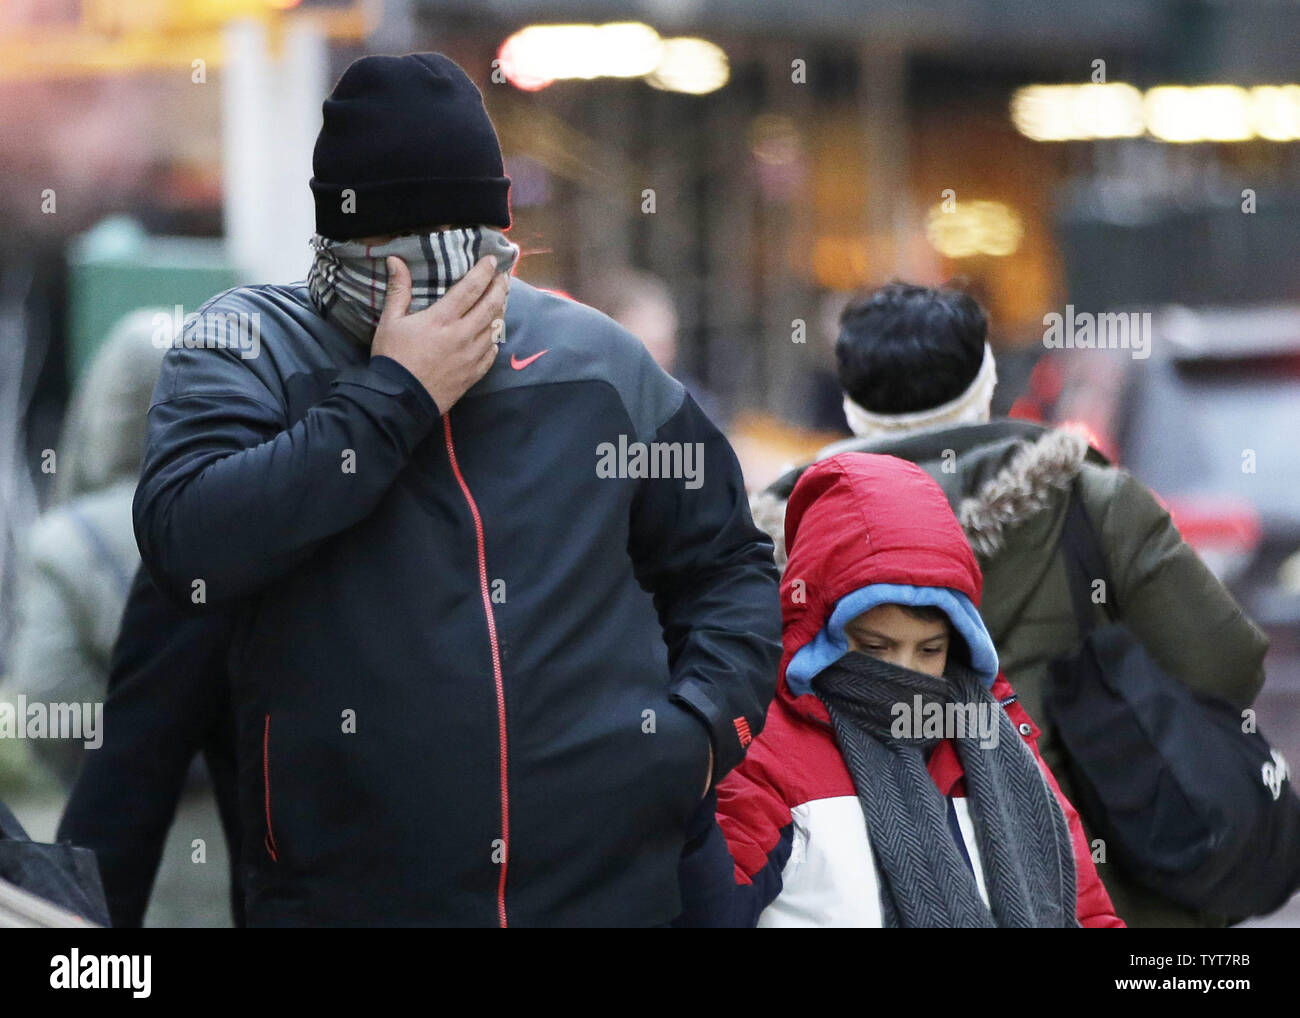 A man with a scarf over his face walks with a child in lower Manhattan in below freezing temperature in New York City on January 2, 2018. The New York City area will remain dangerously cold this week as at least two inches of snow are expected to fall on Wednesday and Thursday.     Photo by John Angelillo/UPI - Stock Image